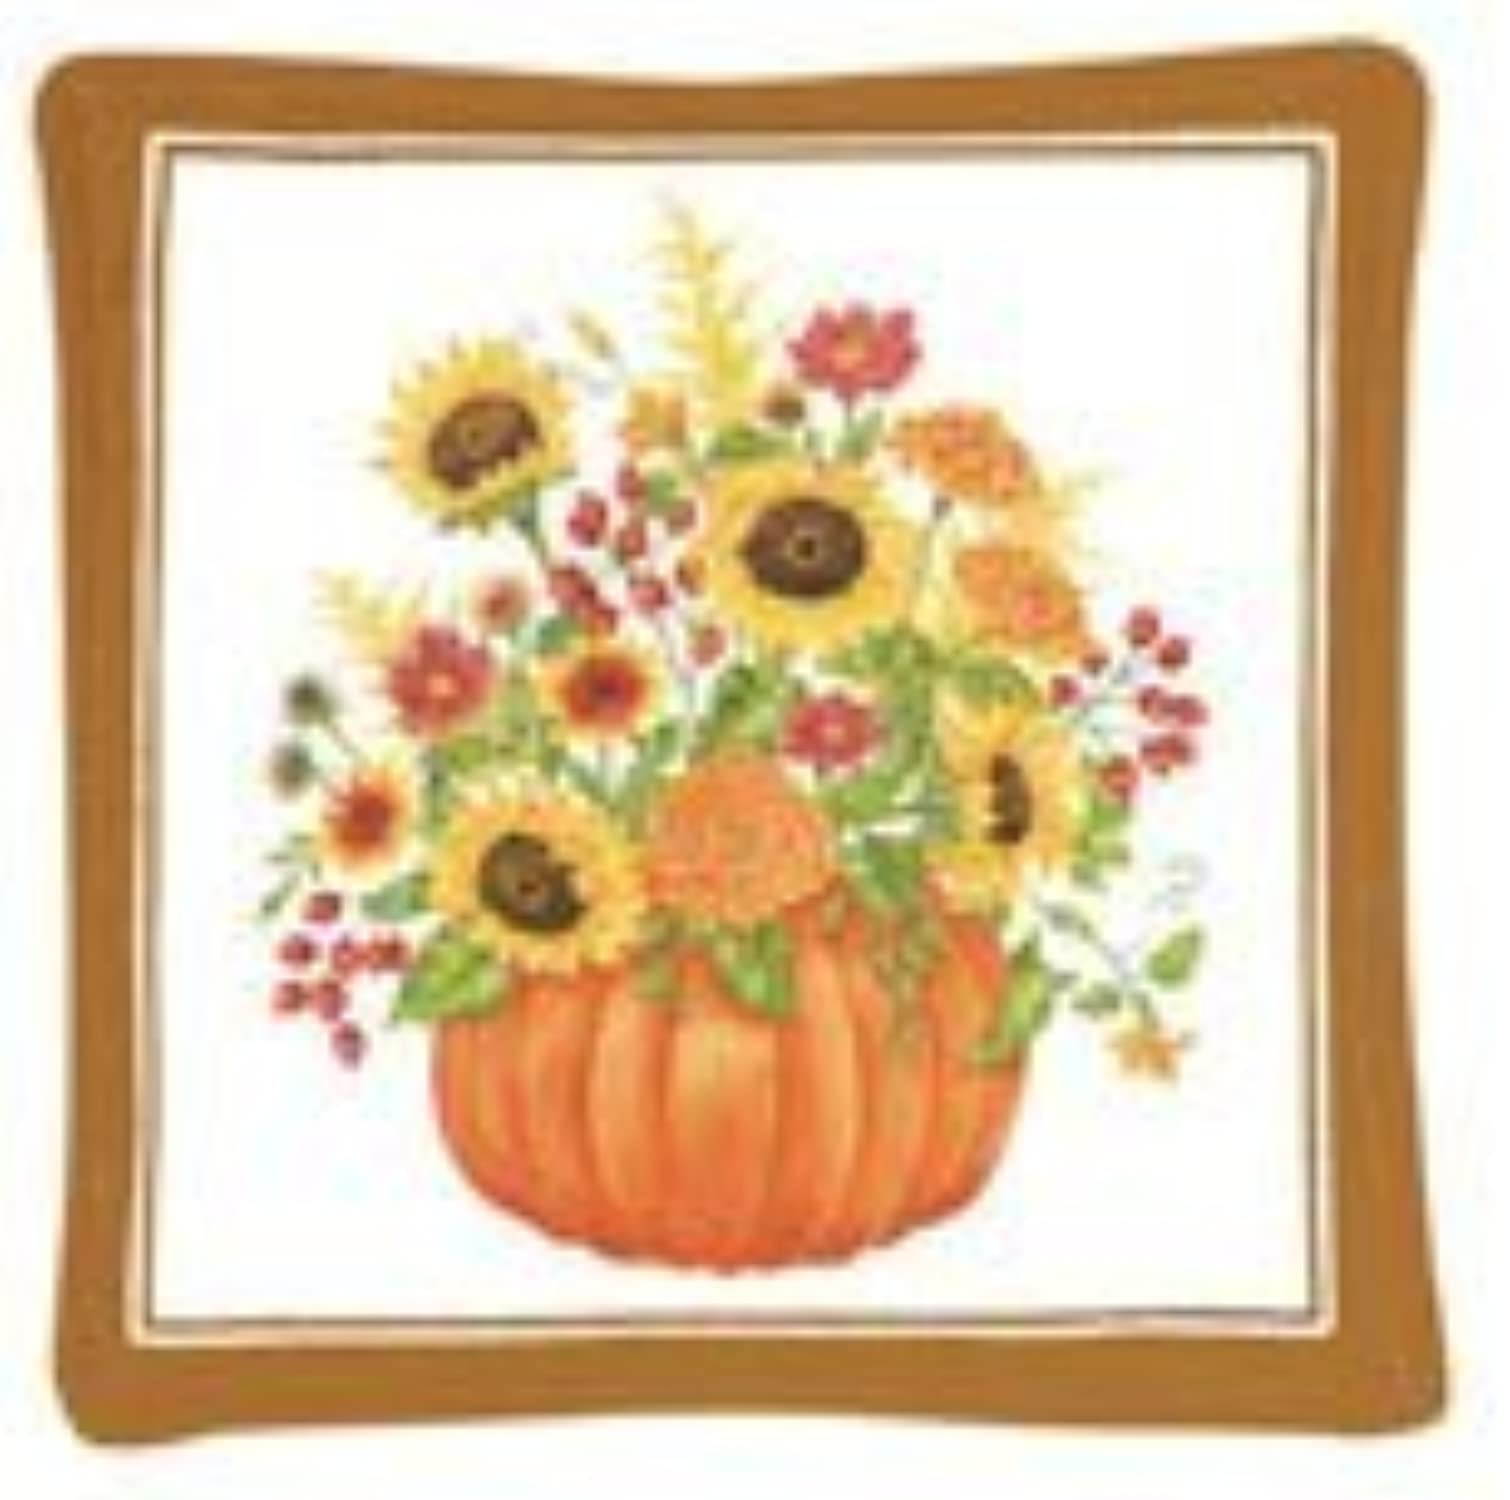 Alices Cottage Pumpkin Bouquet Single Mug Mat by Alice's Cottage